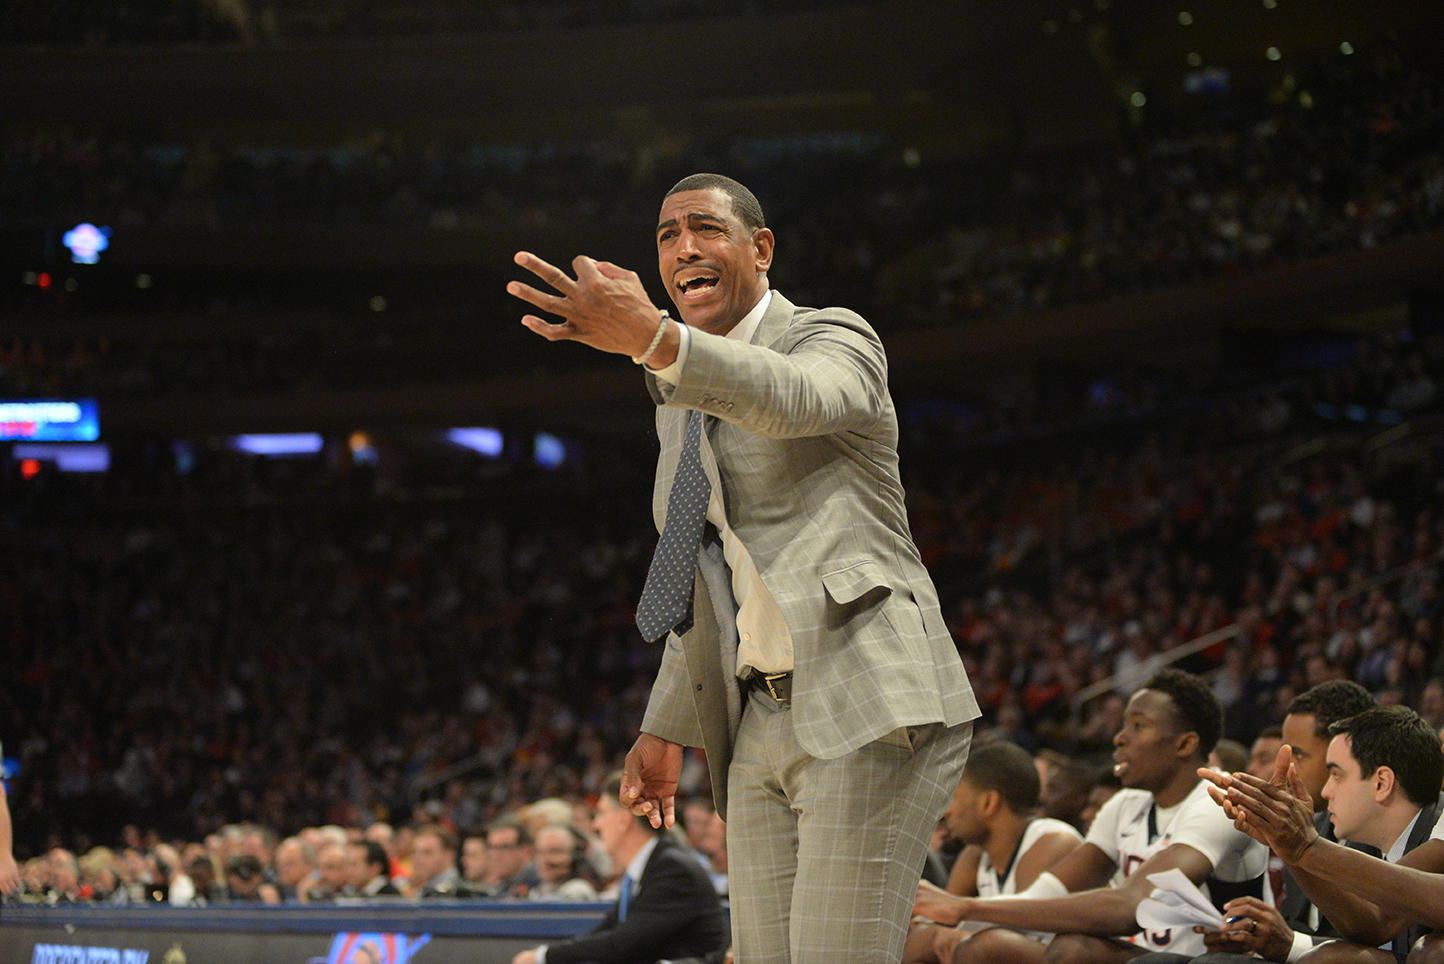 UConn men's basketball head coach Kevin Ollie is pictured during the Huskies' game against No. 6 Maryland at Madison Square Garden in New York on Tuesday, Dec. 8, 2015. (Ashley Maher/The Daily Campus)